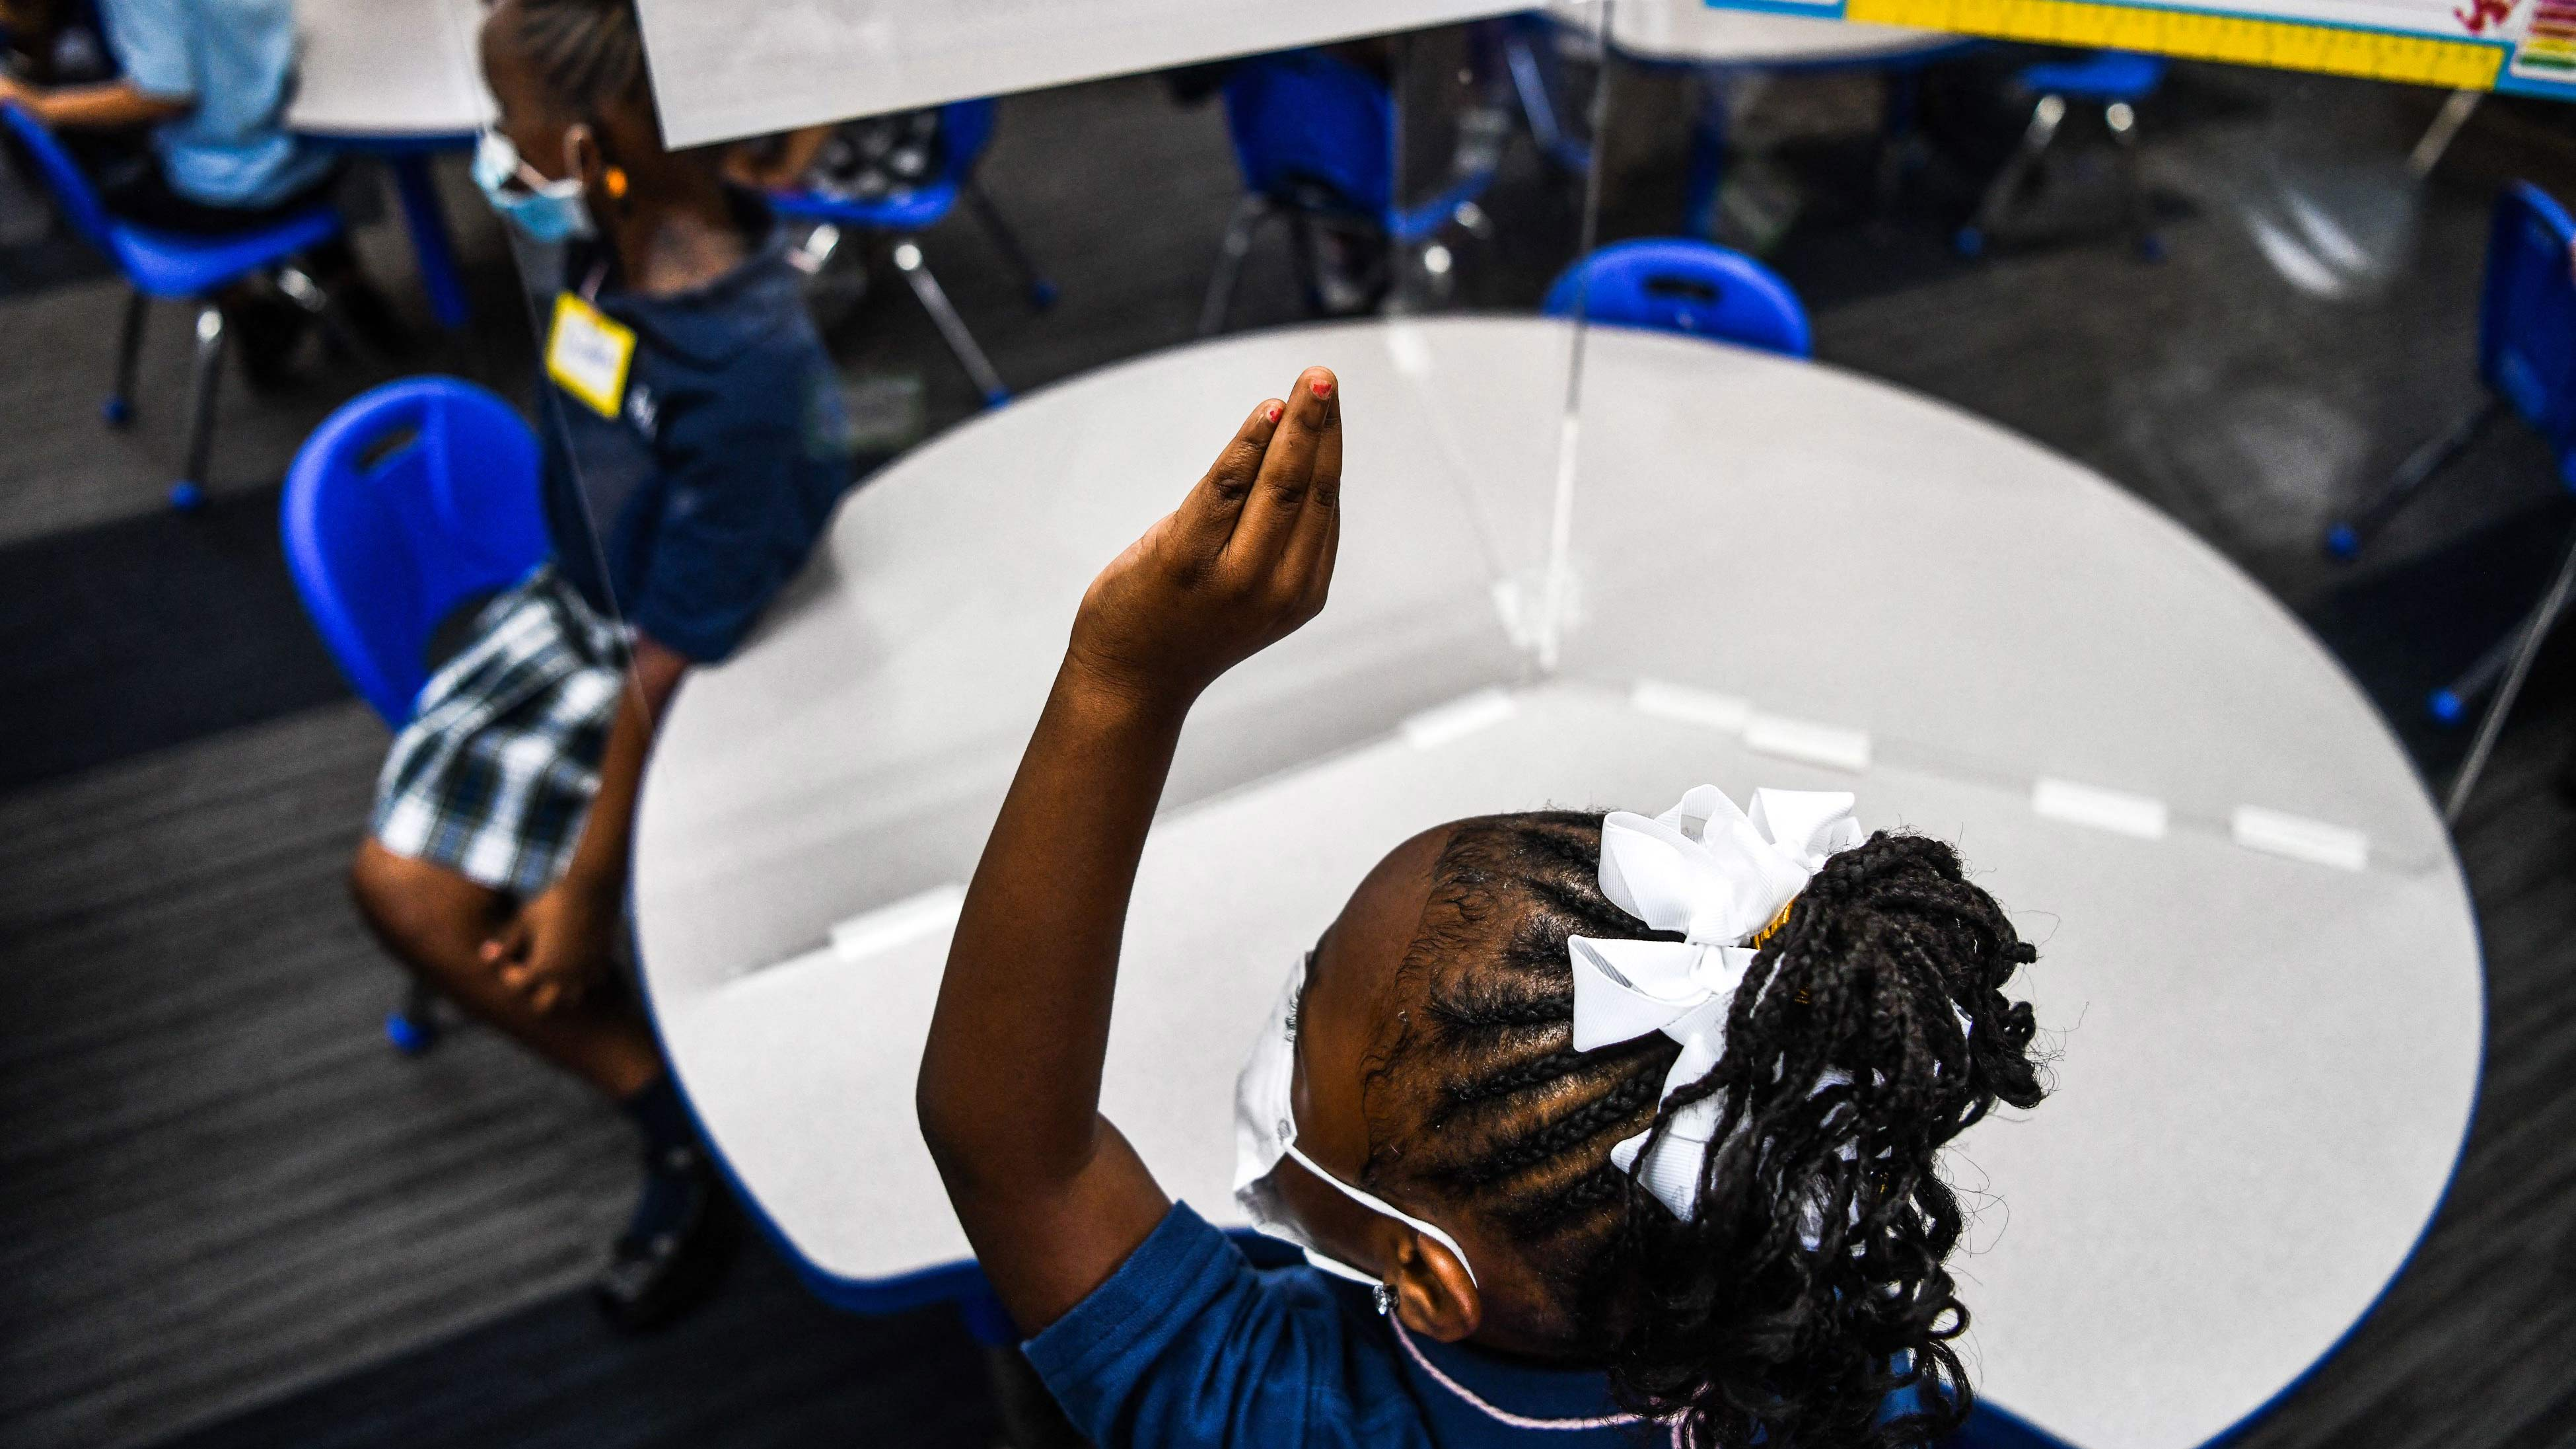 Students attend their first day of school after summer vacation at the St. Lawrence Catholic Schoolin Miami on August 18.